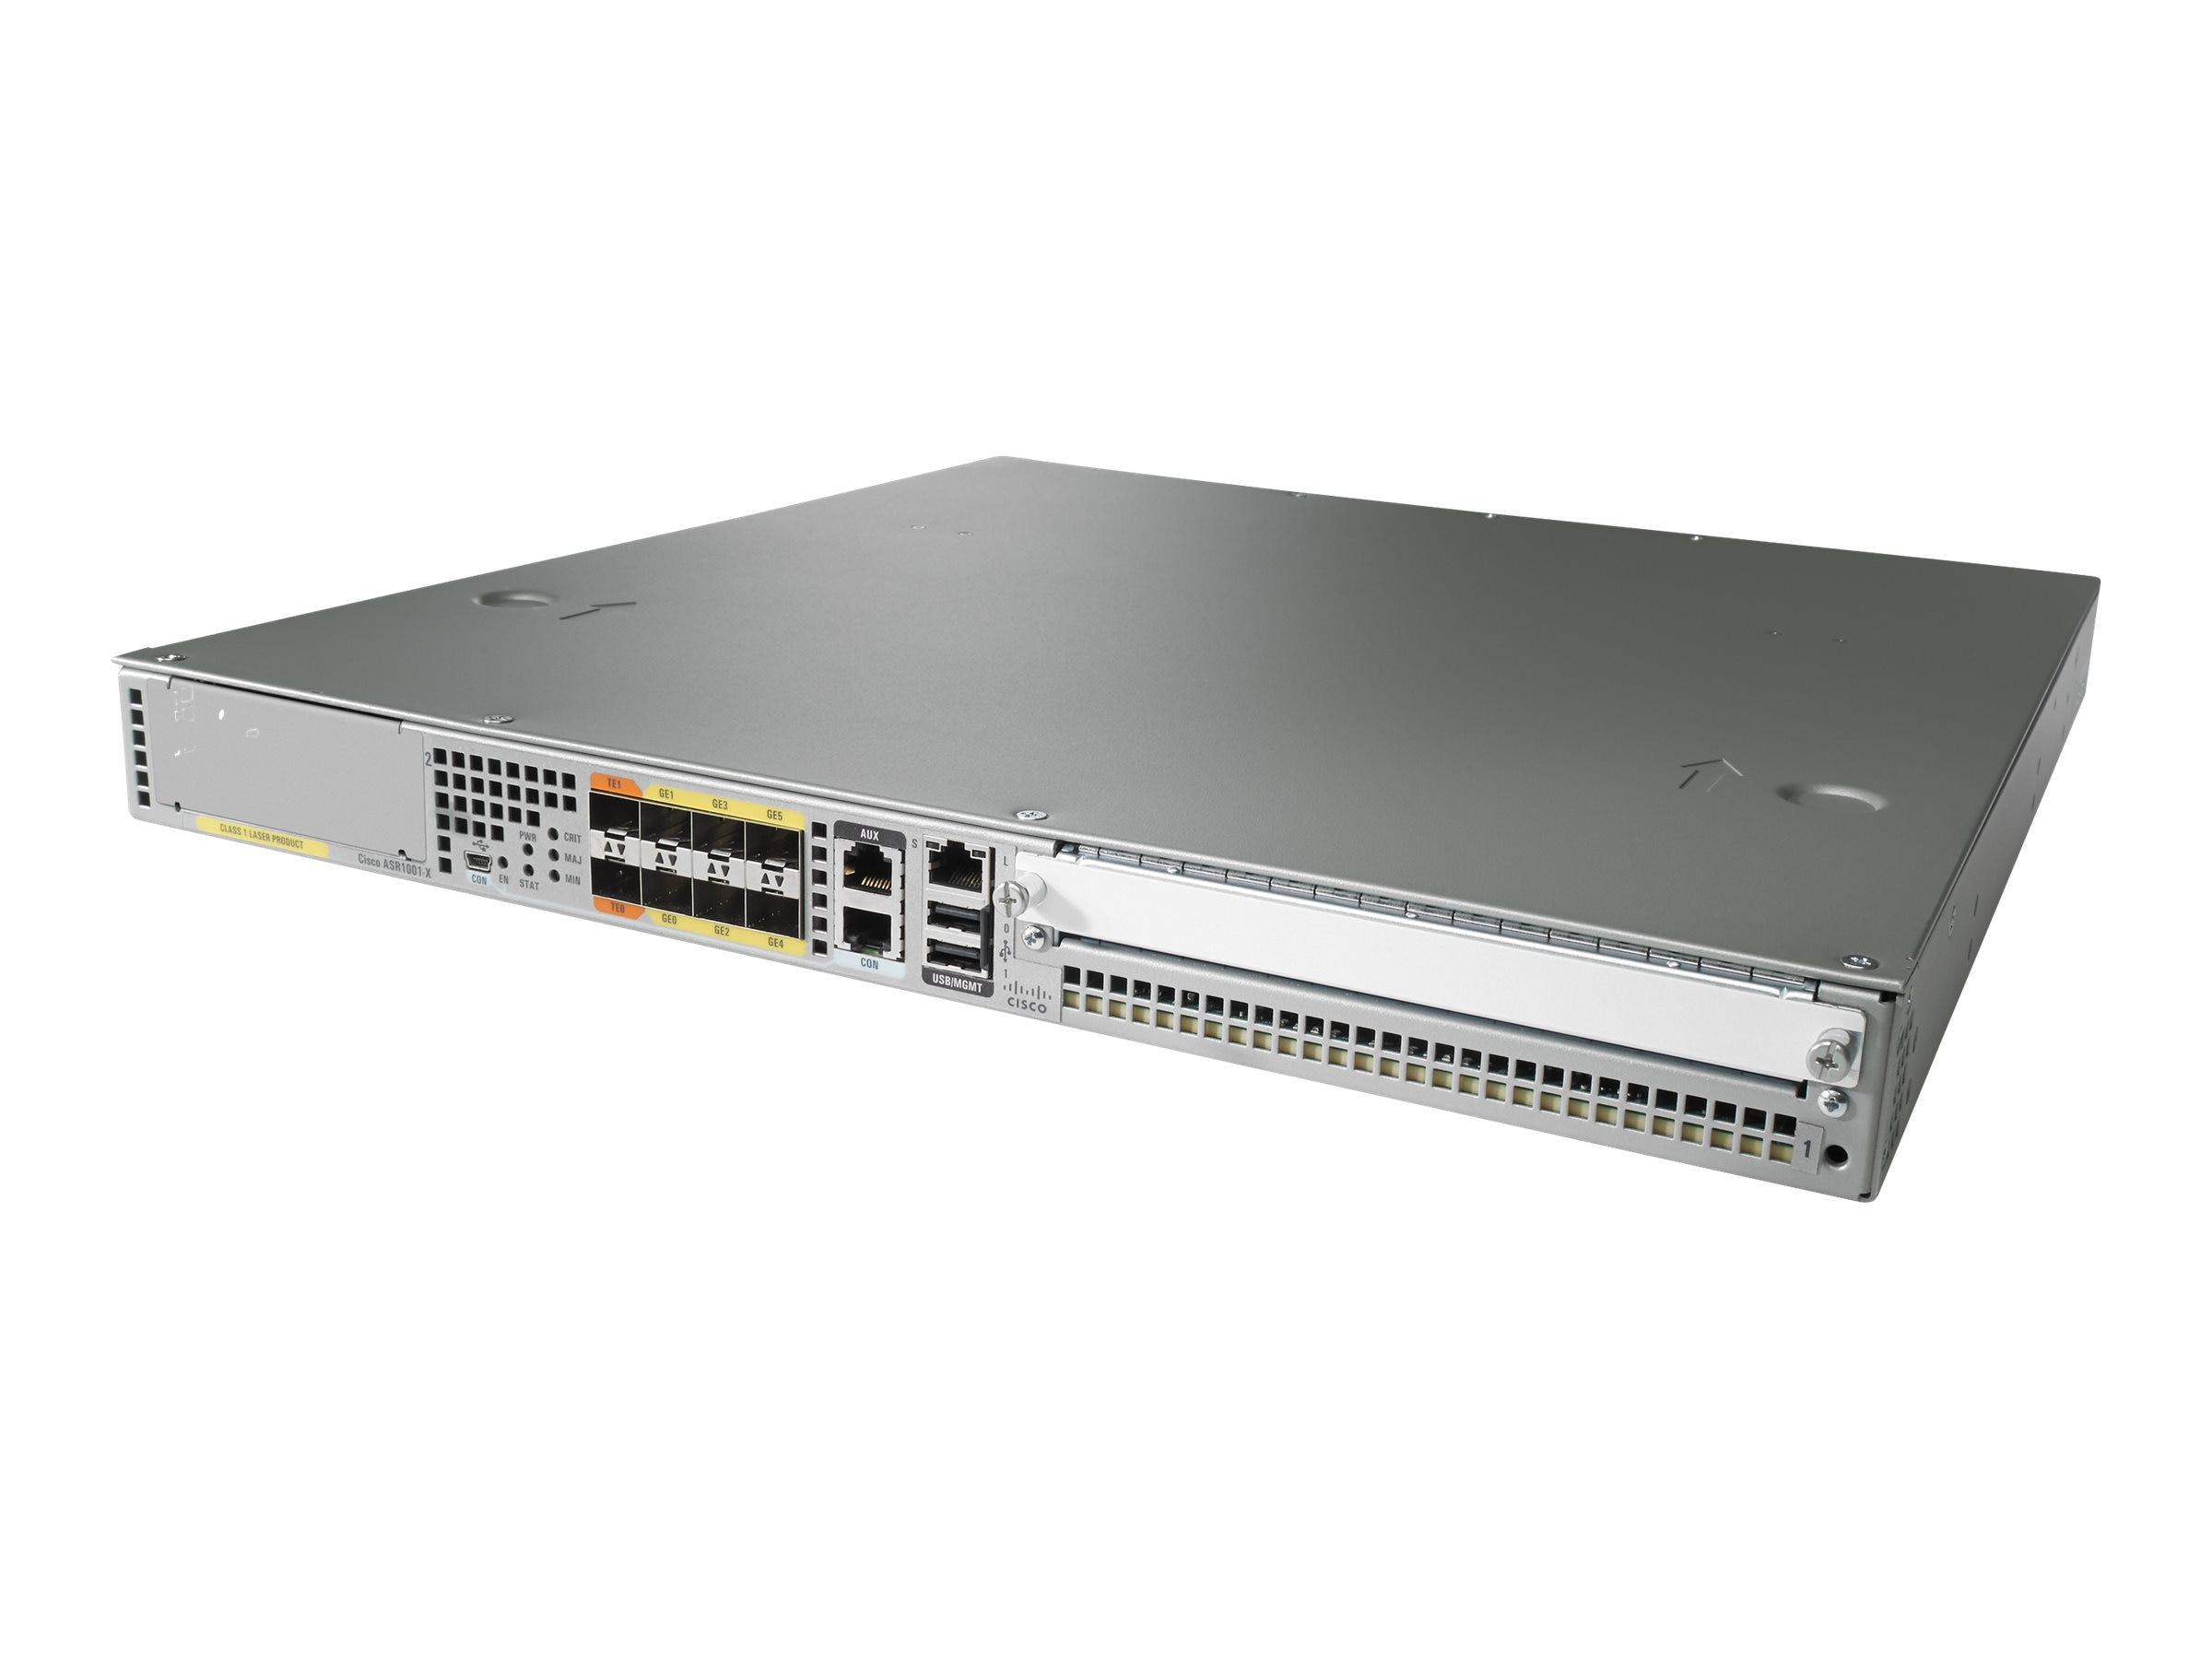 Cisco One ASR1001-X Chassis, IPBase, APIC EM, APIs, C1-ASR1001-X/K9, 21565932, Wireless Access Points & Bridges